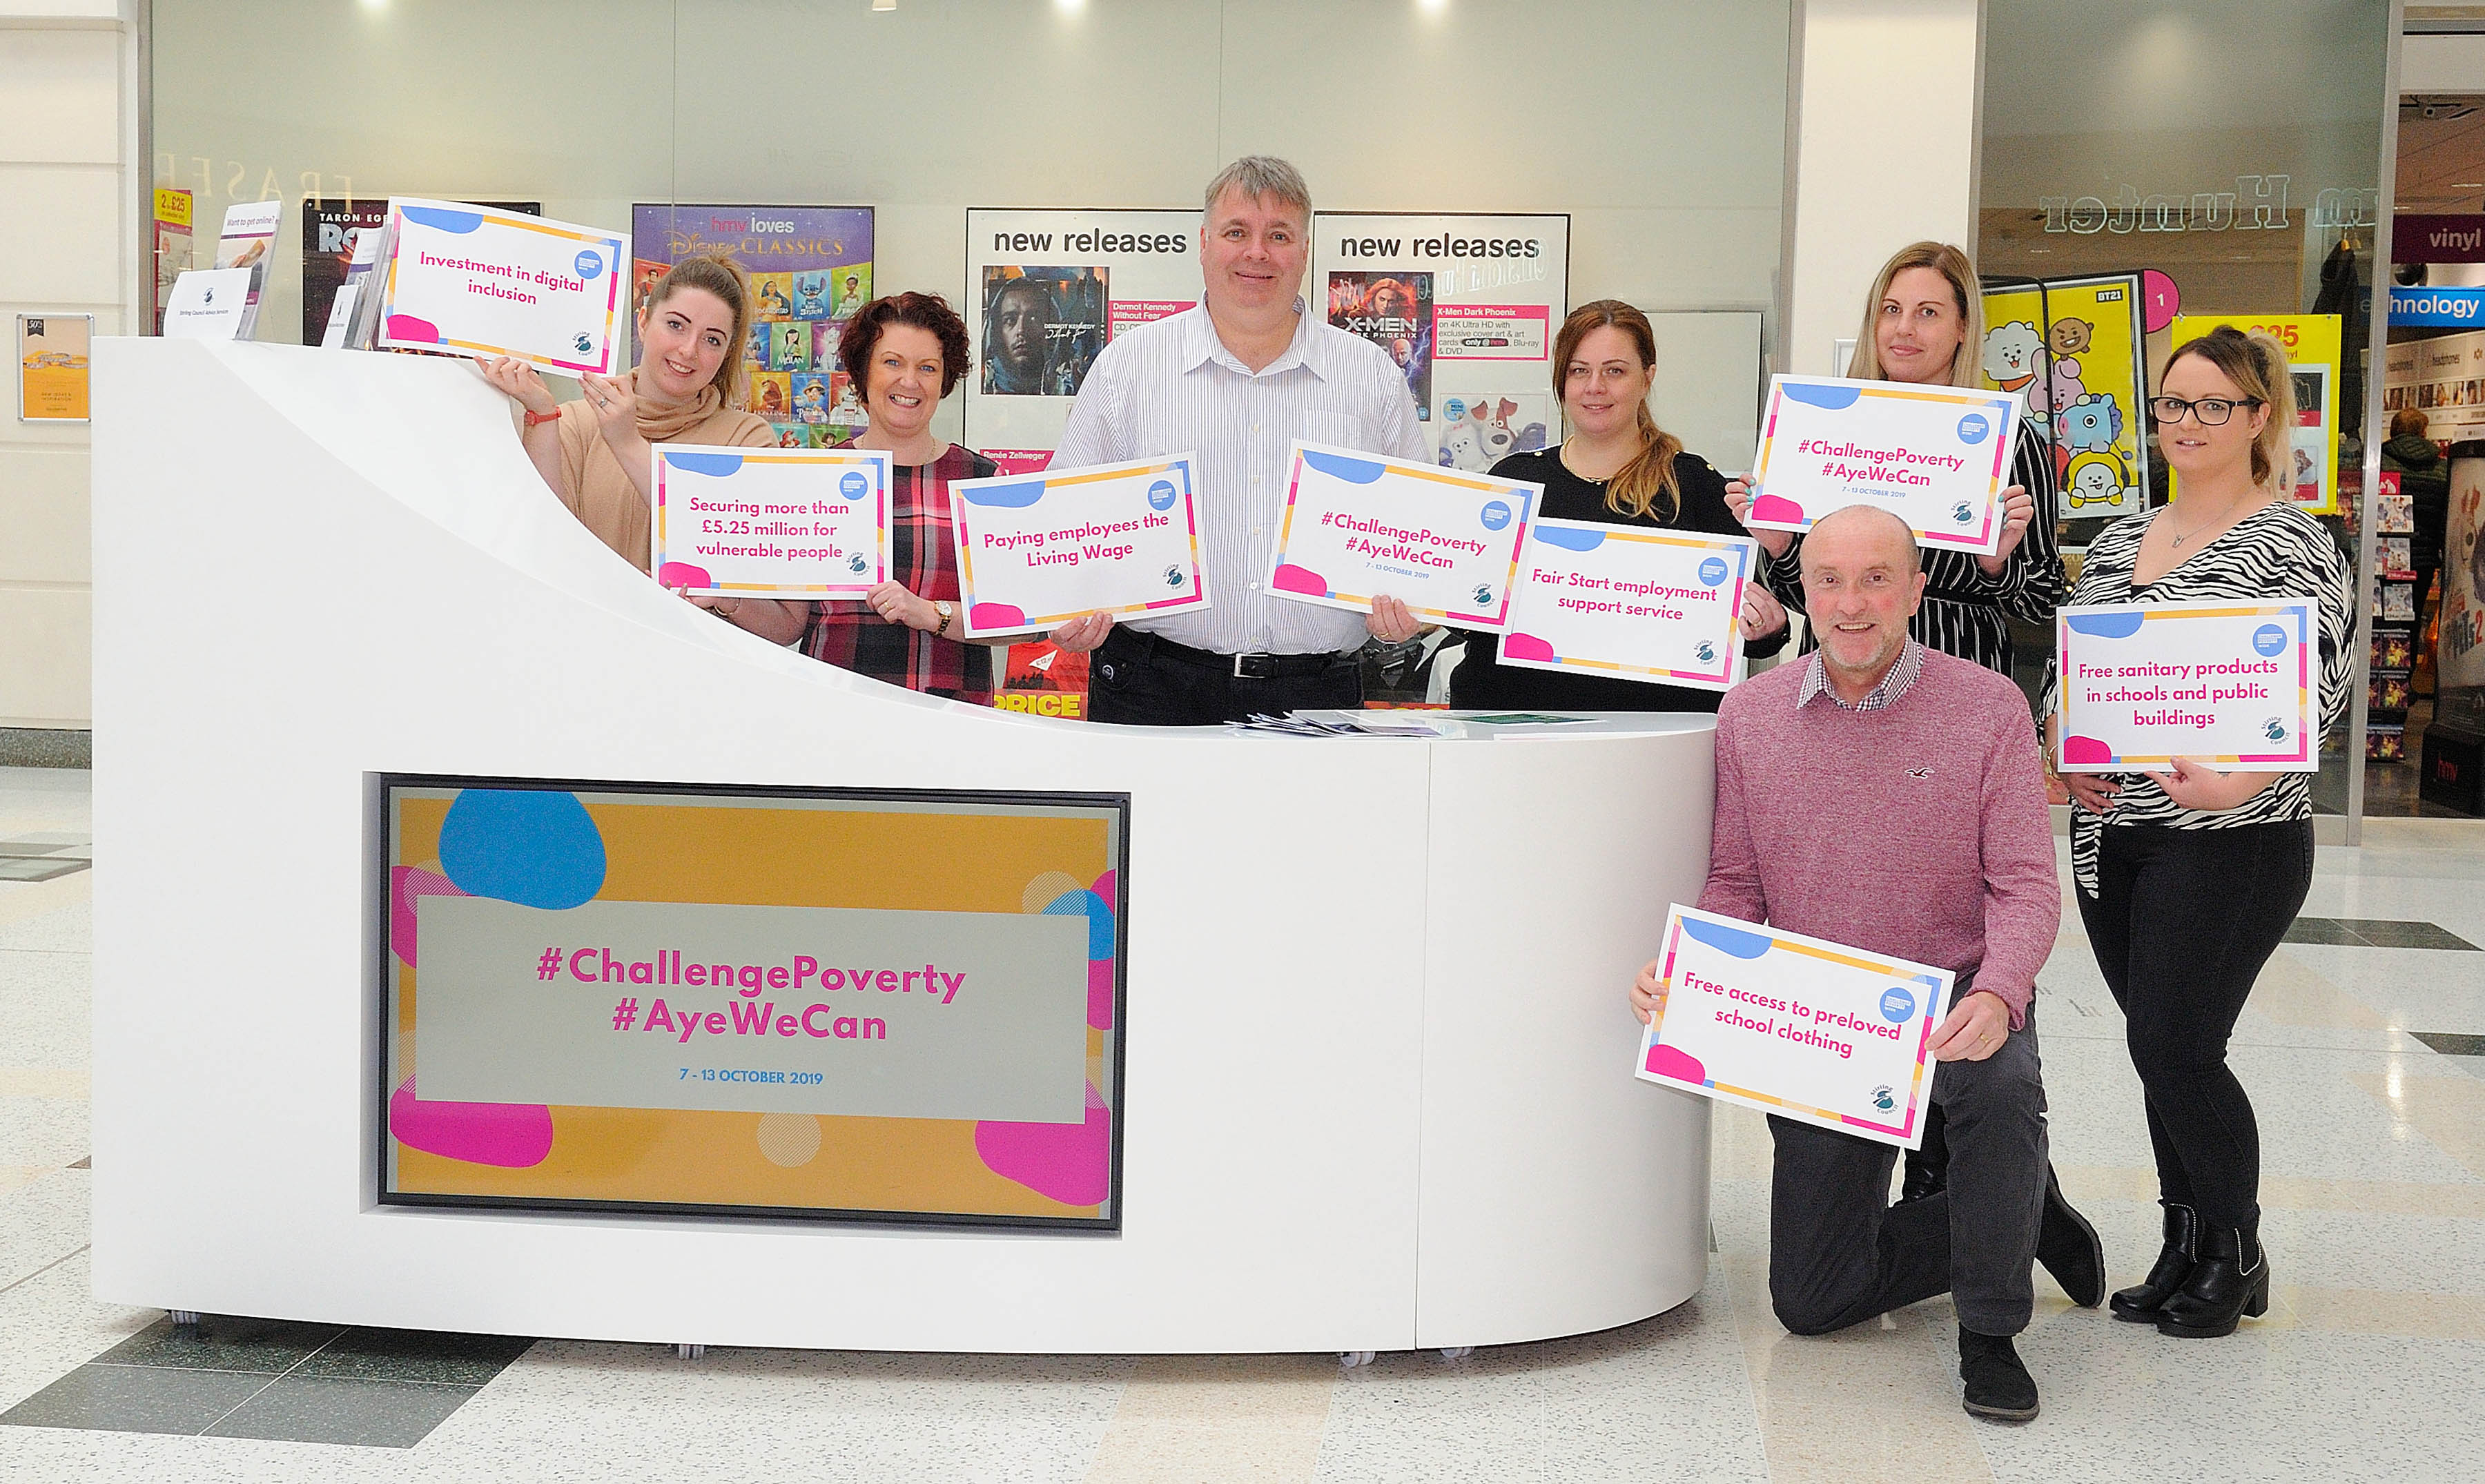 Challenge Poverty Week - Cllr Kane and members of the Council's Advice Services